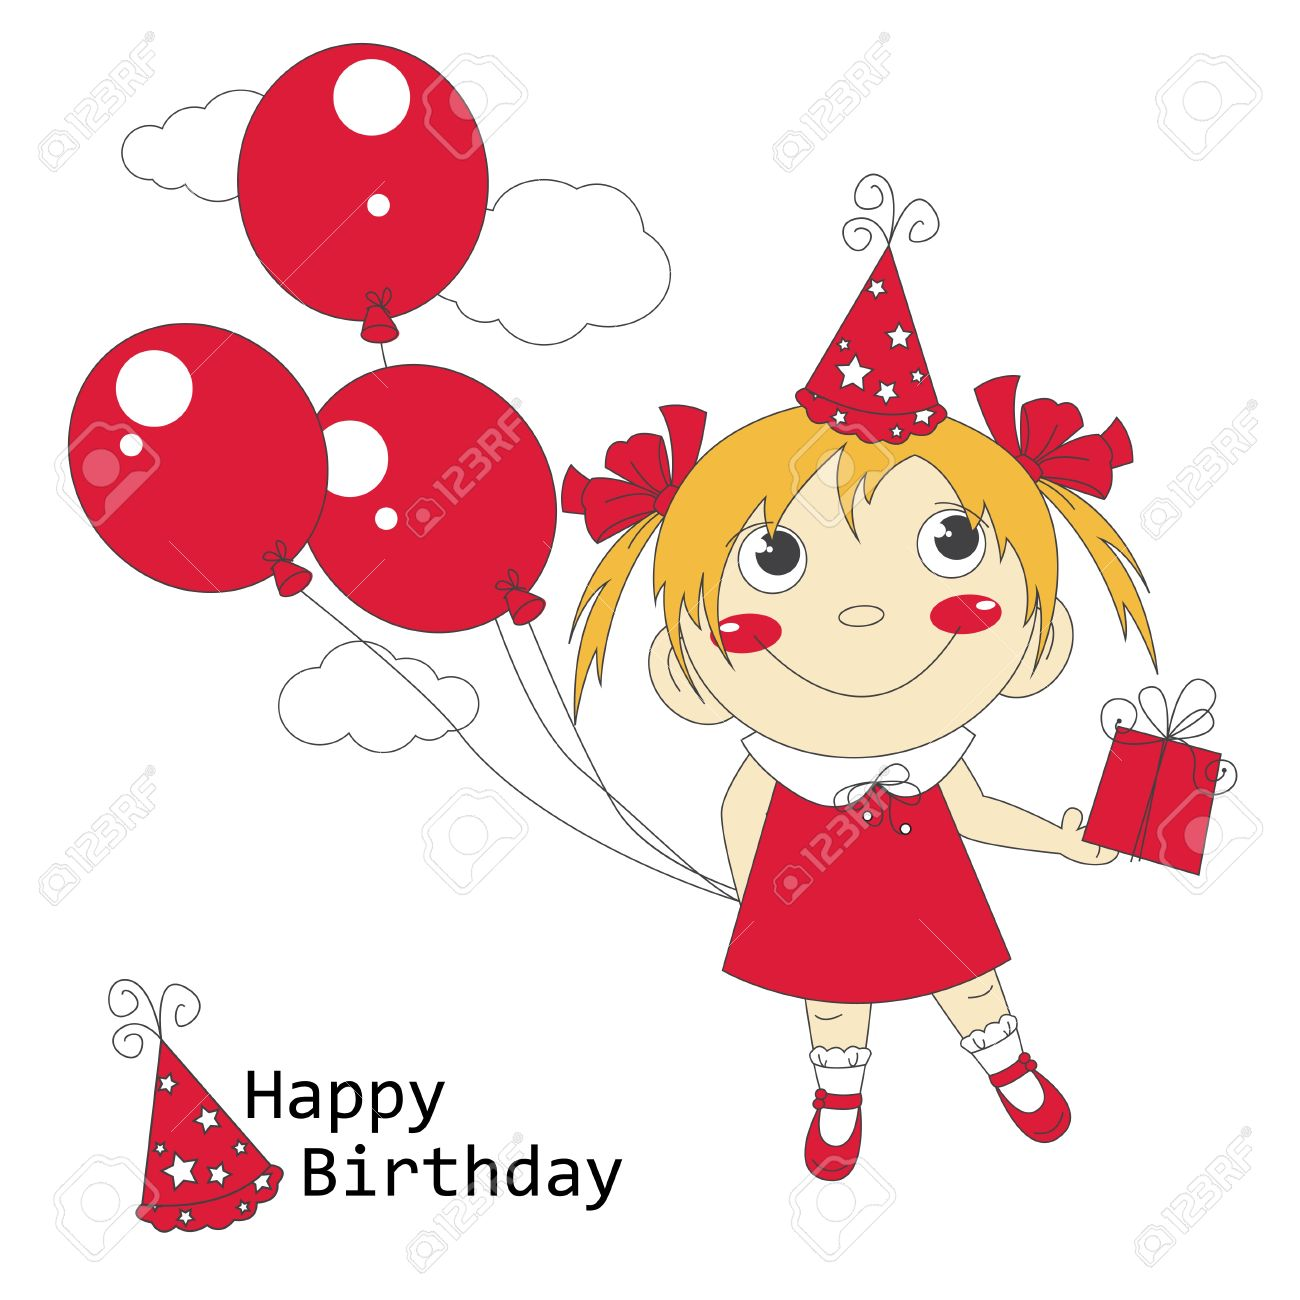 happy birthday young girl ; 21074483-happy-birthday-illustration-of-cute-little-girl-with-air-balloons-and-gift